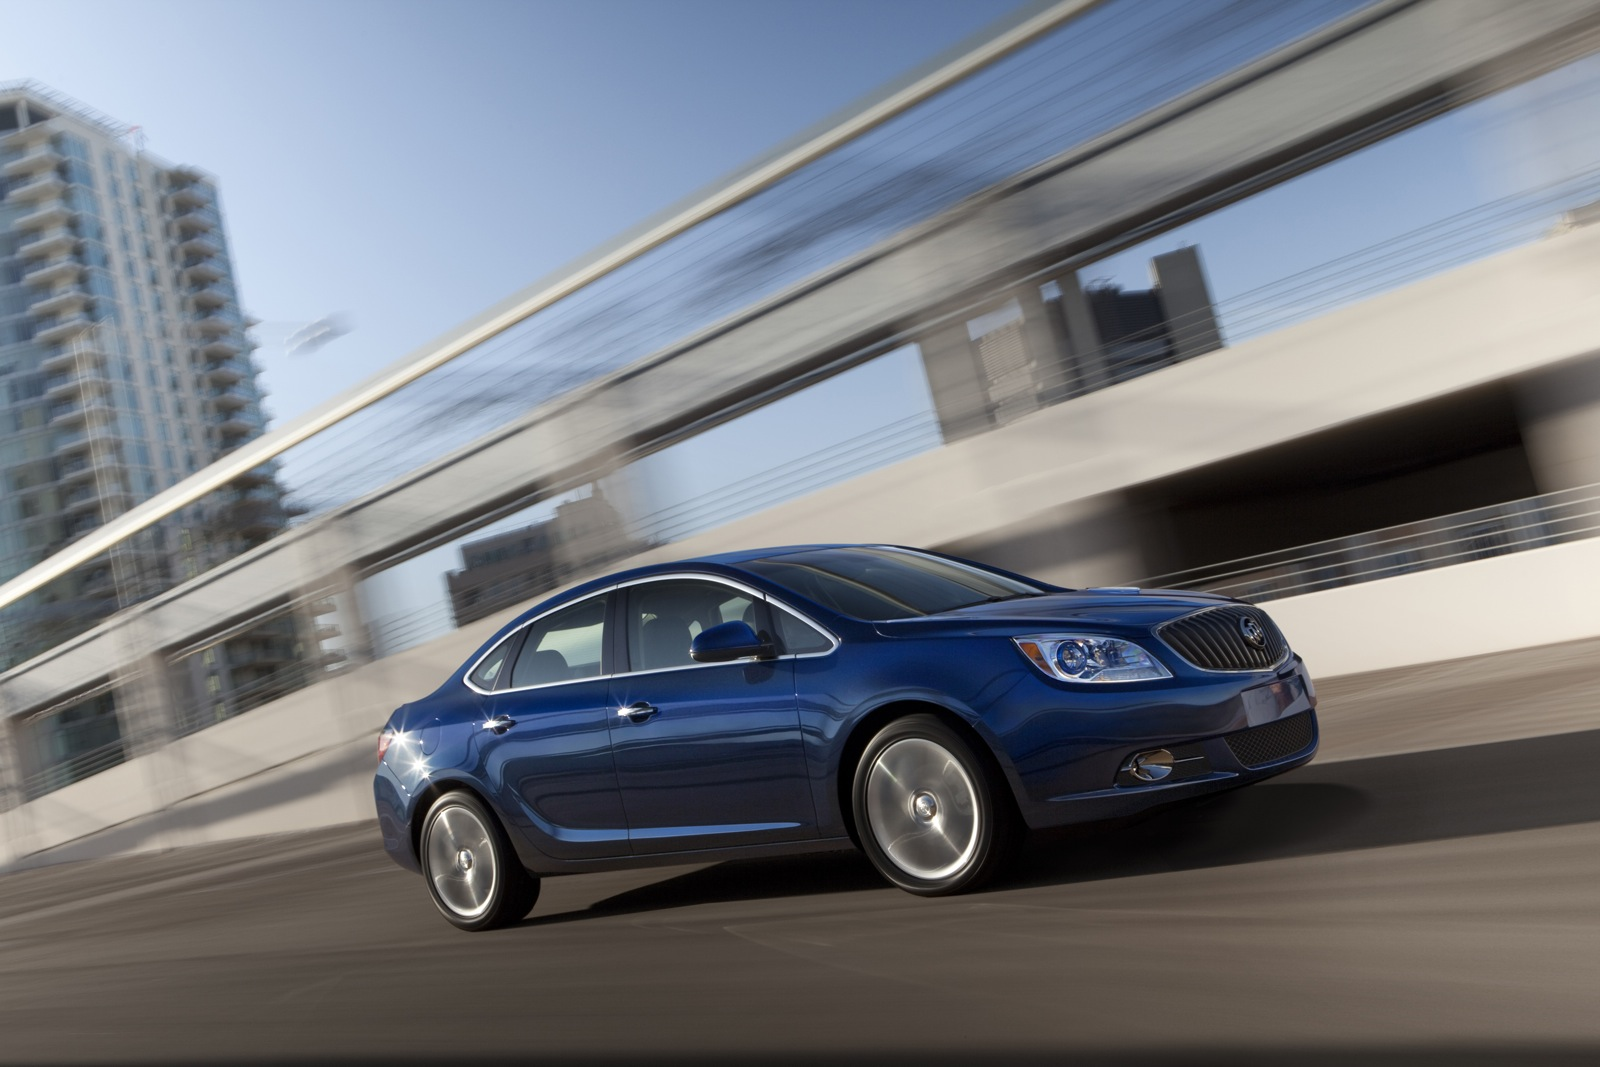 2013 Buick Verano T It Stands For Turbo But Its Silent Rear View Camera